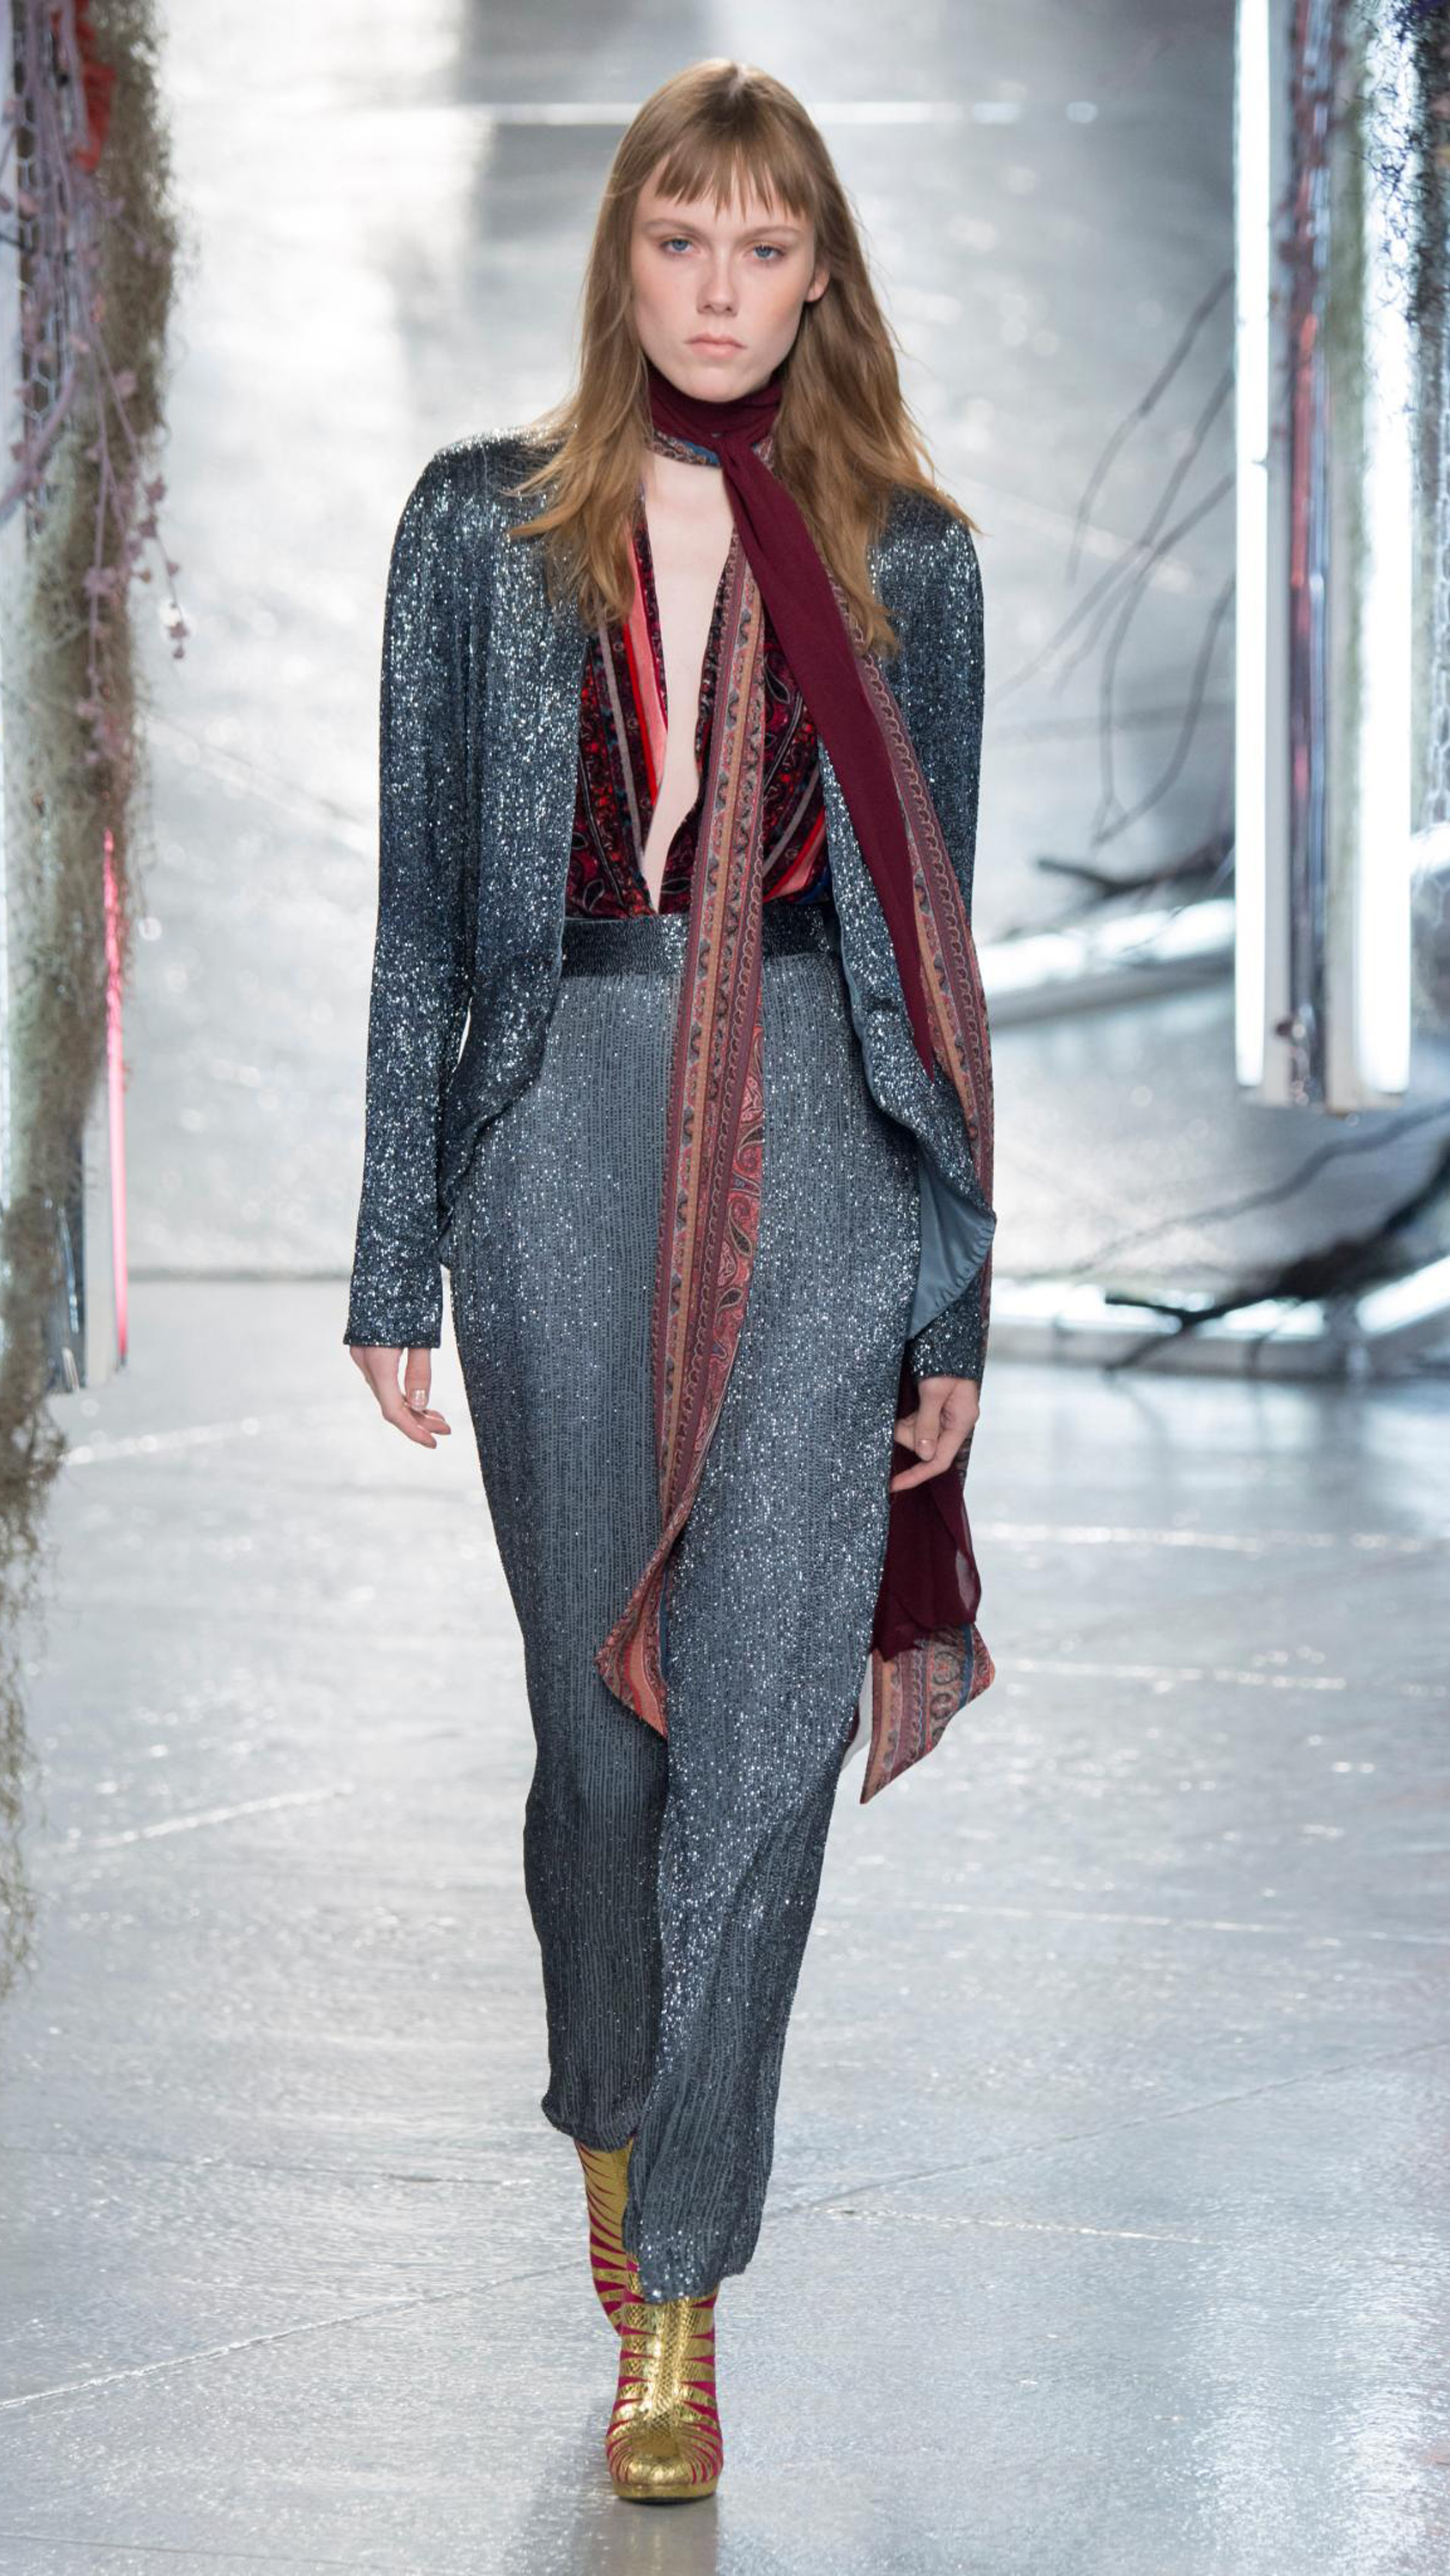 At Rodarte, designers Kate and Laura Mulleavy lent their strain of theatrical design to SS16 with lashings of lace and velvet topped with sequins and shearling. The result? A vibe that was at times reminiscent of Studio 54 in its heyday, at times old-worldly. Click through to fall under the spell.